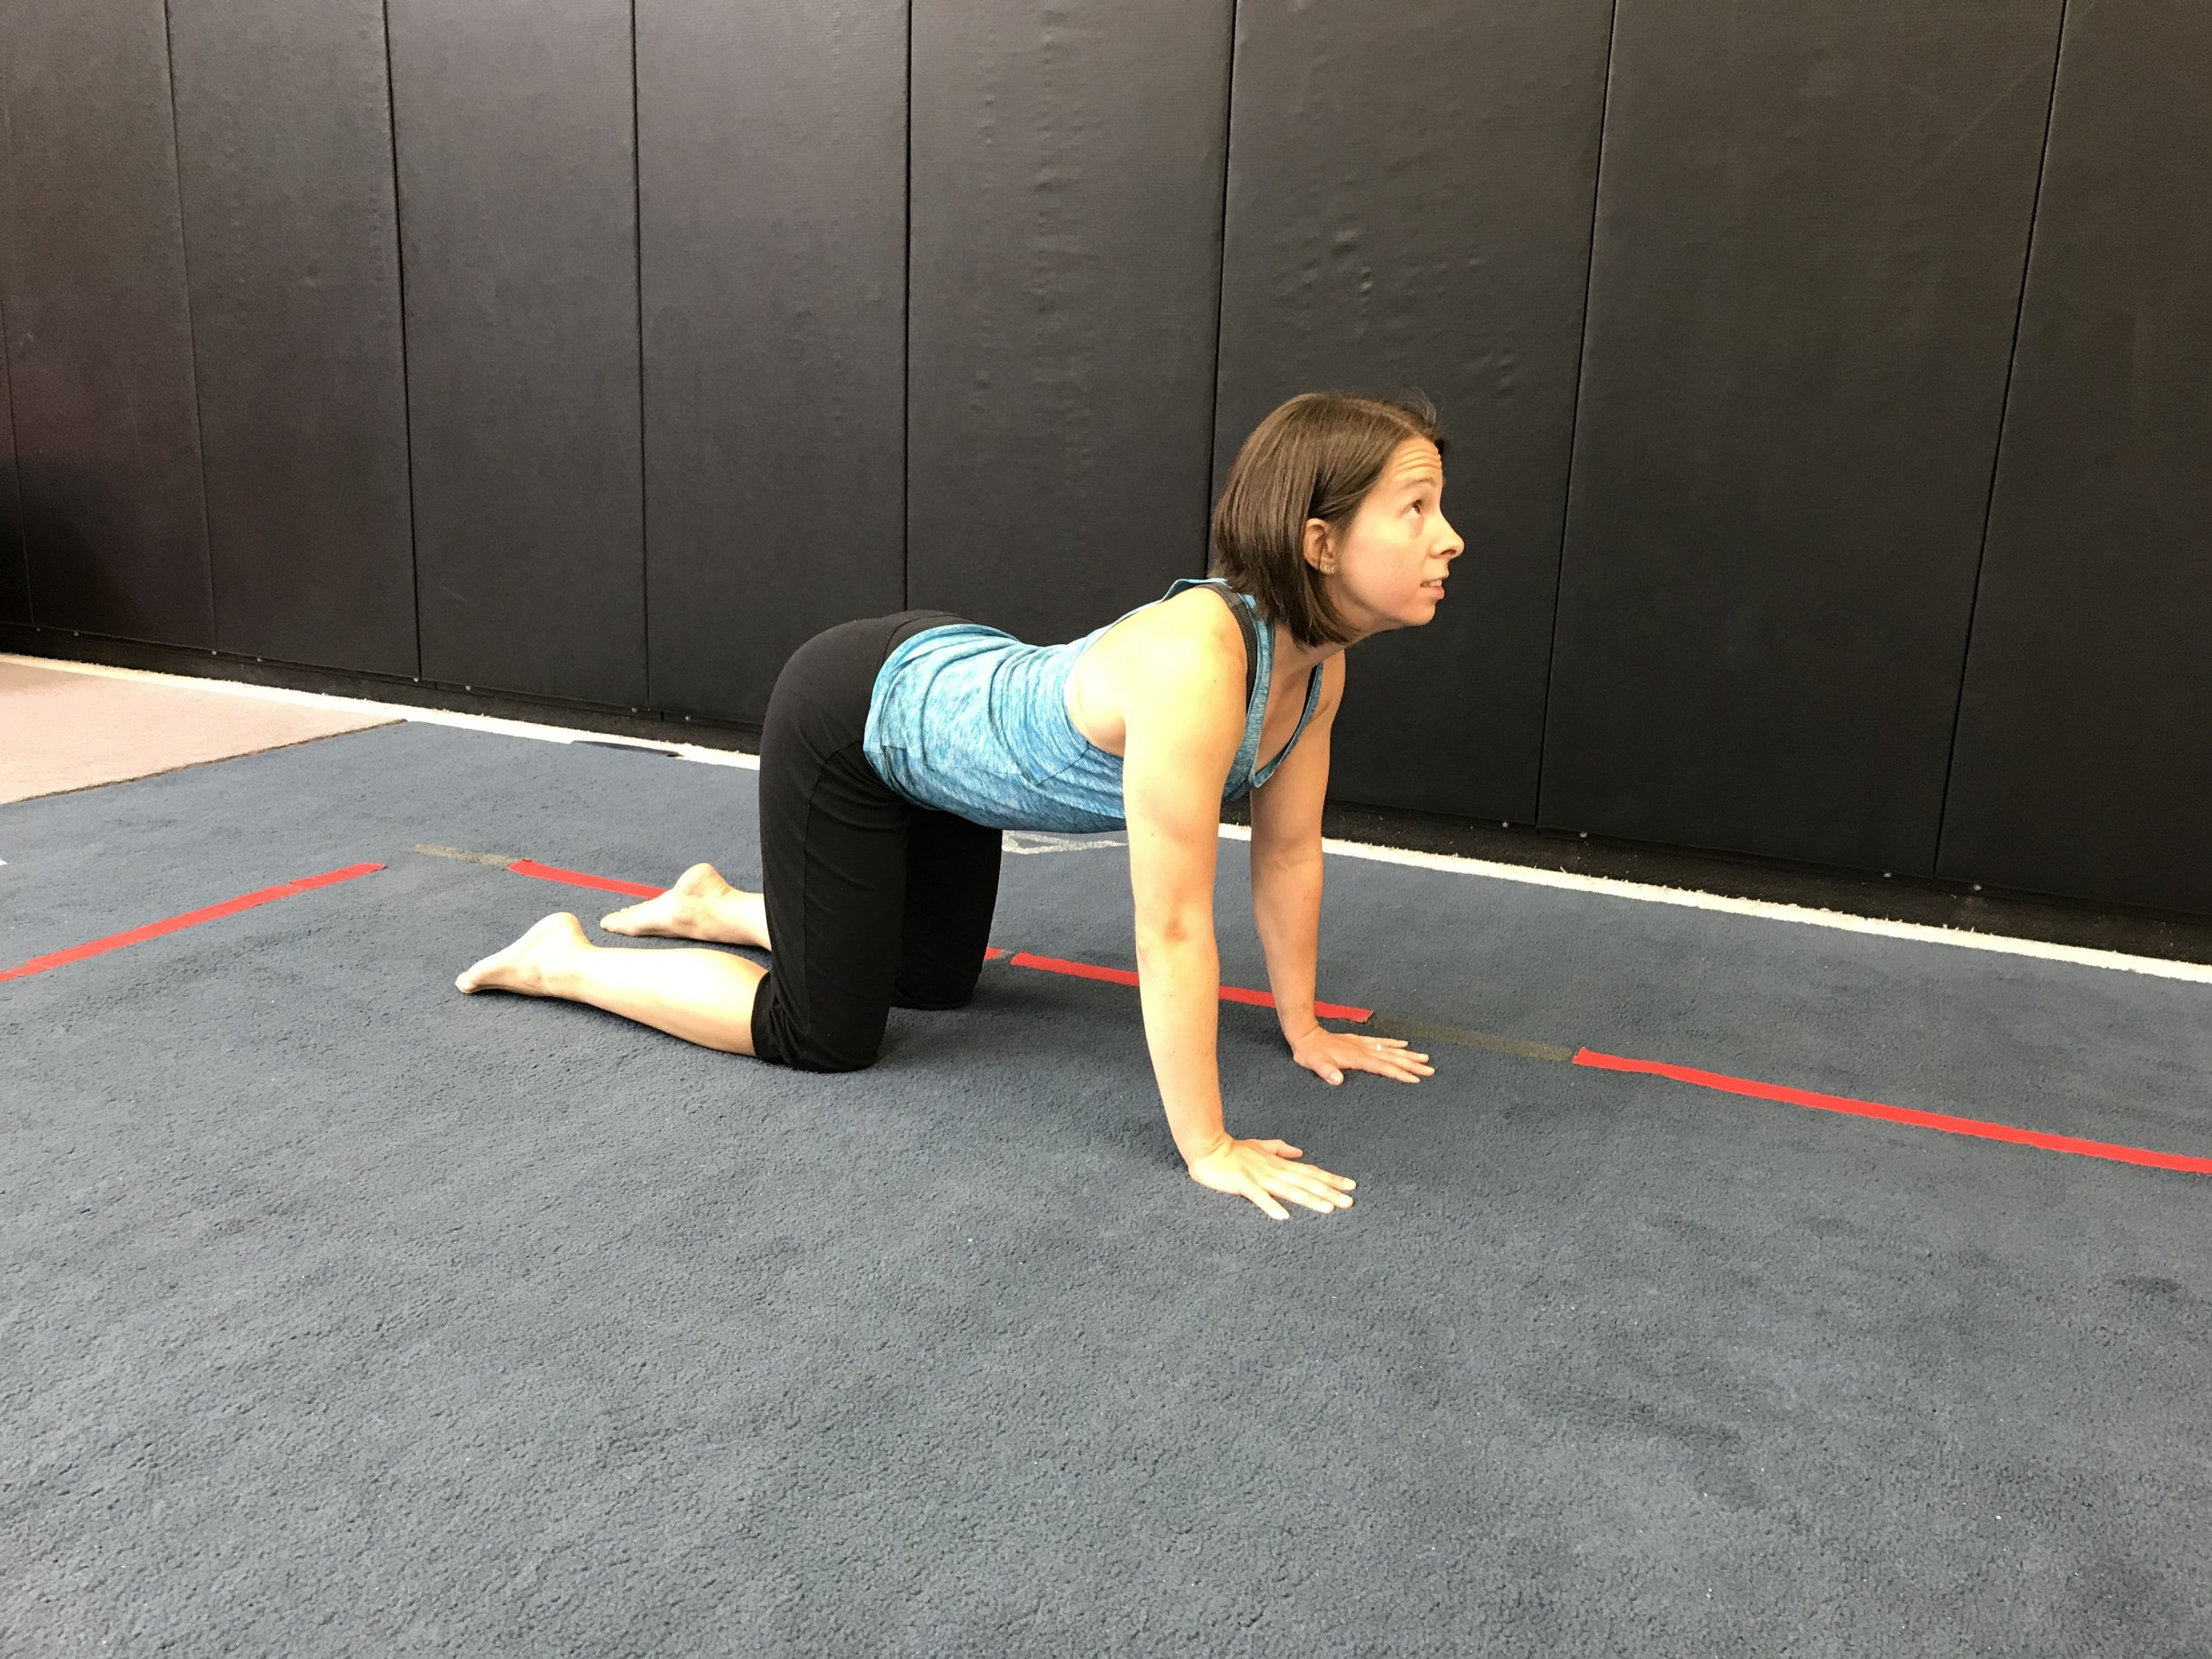 After than, drop the belly down and arch as much as possible. Lift the head to increase the stretch  (*Note - I am sadly quite inflexible in this direction. You will likely see more motion).